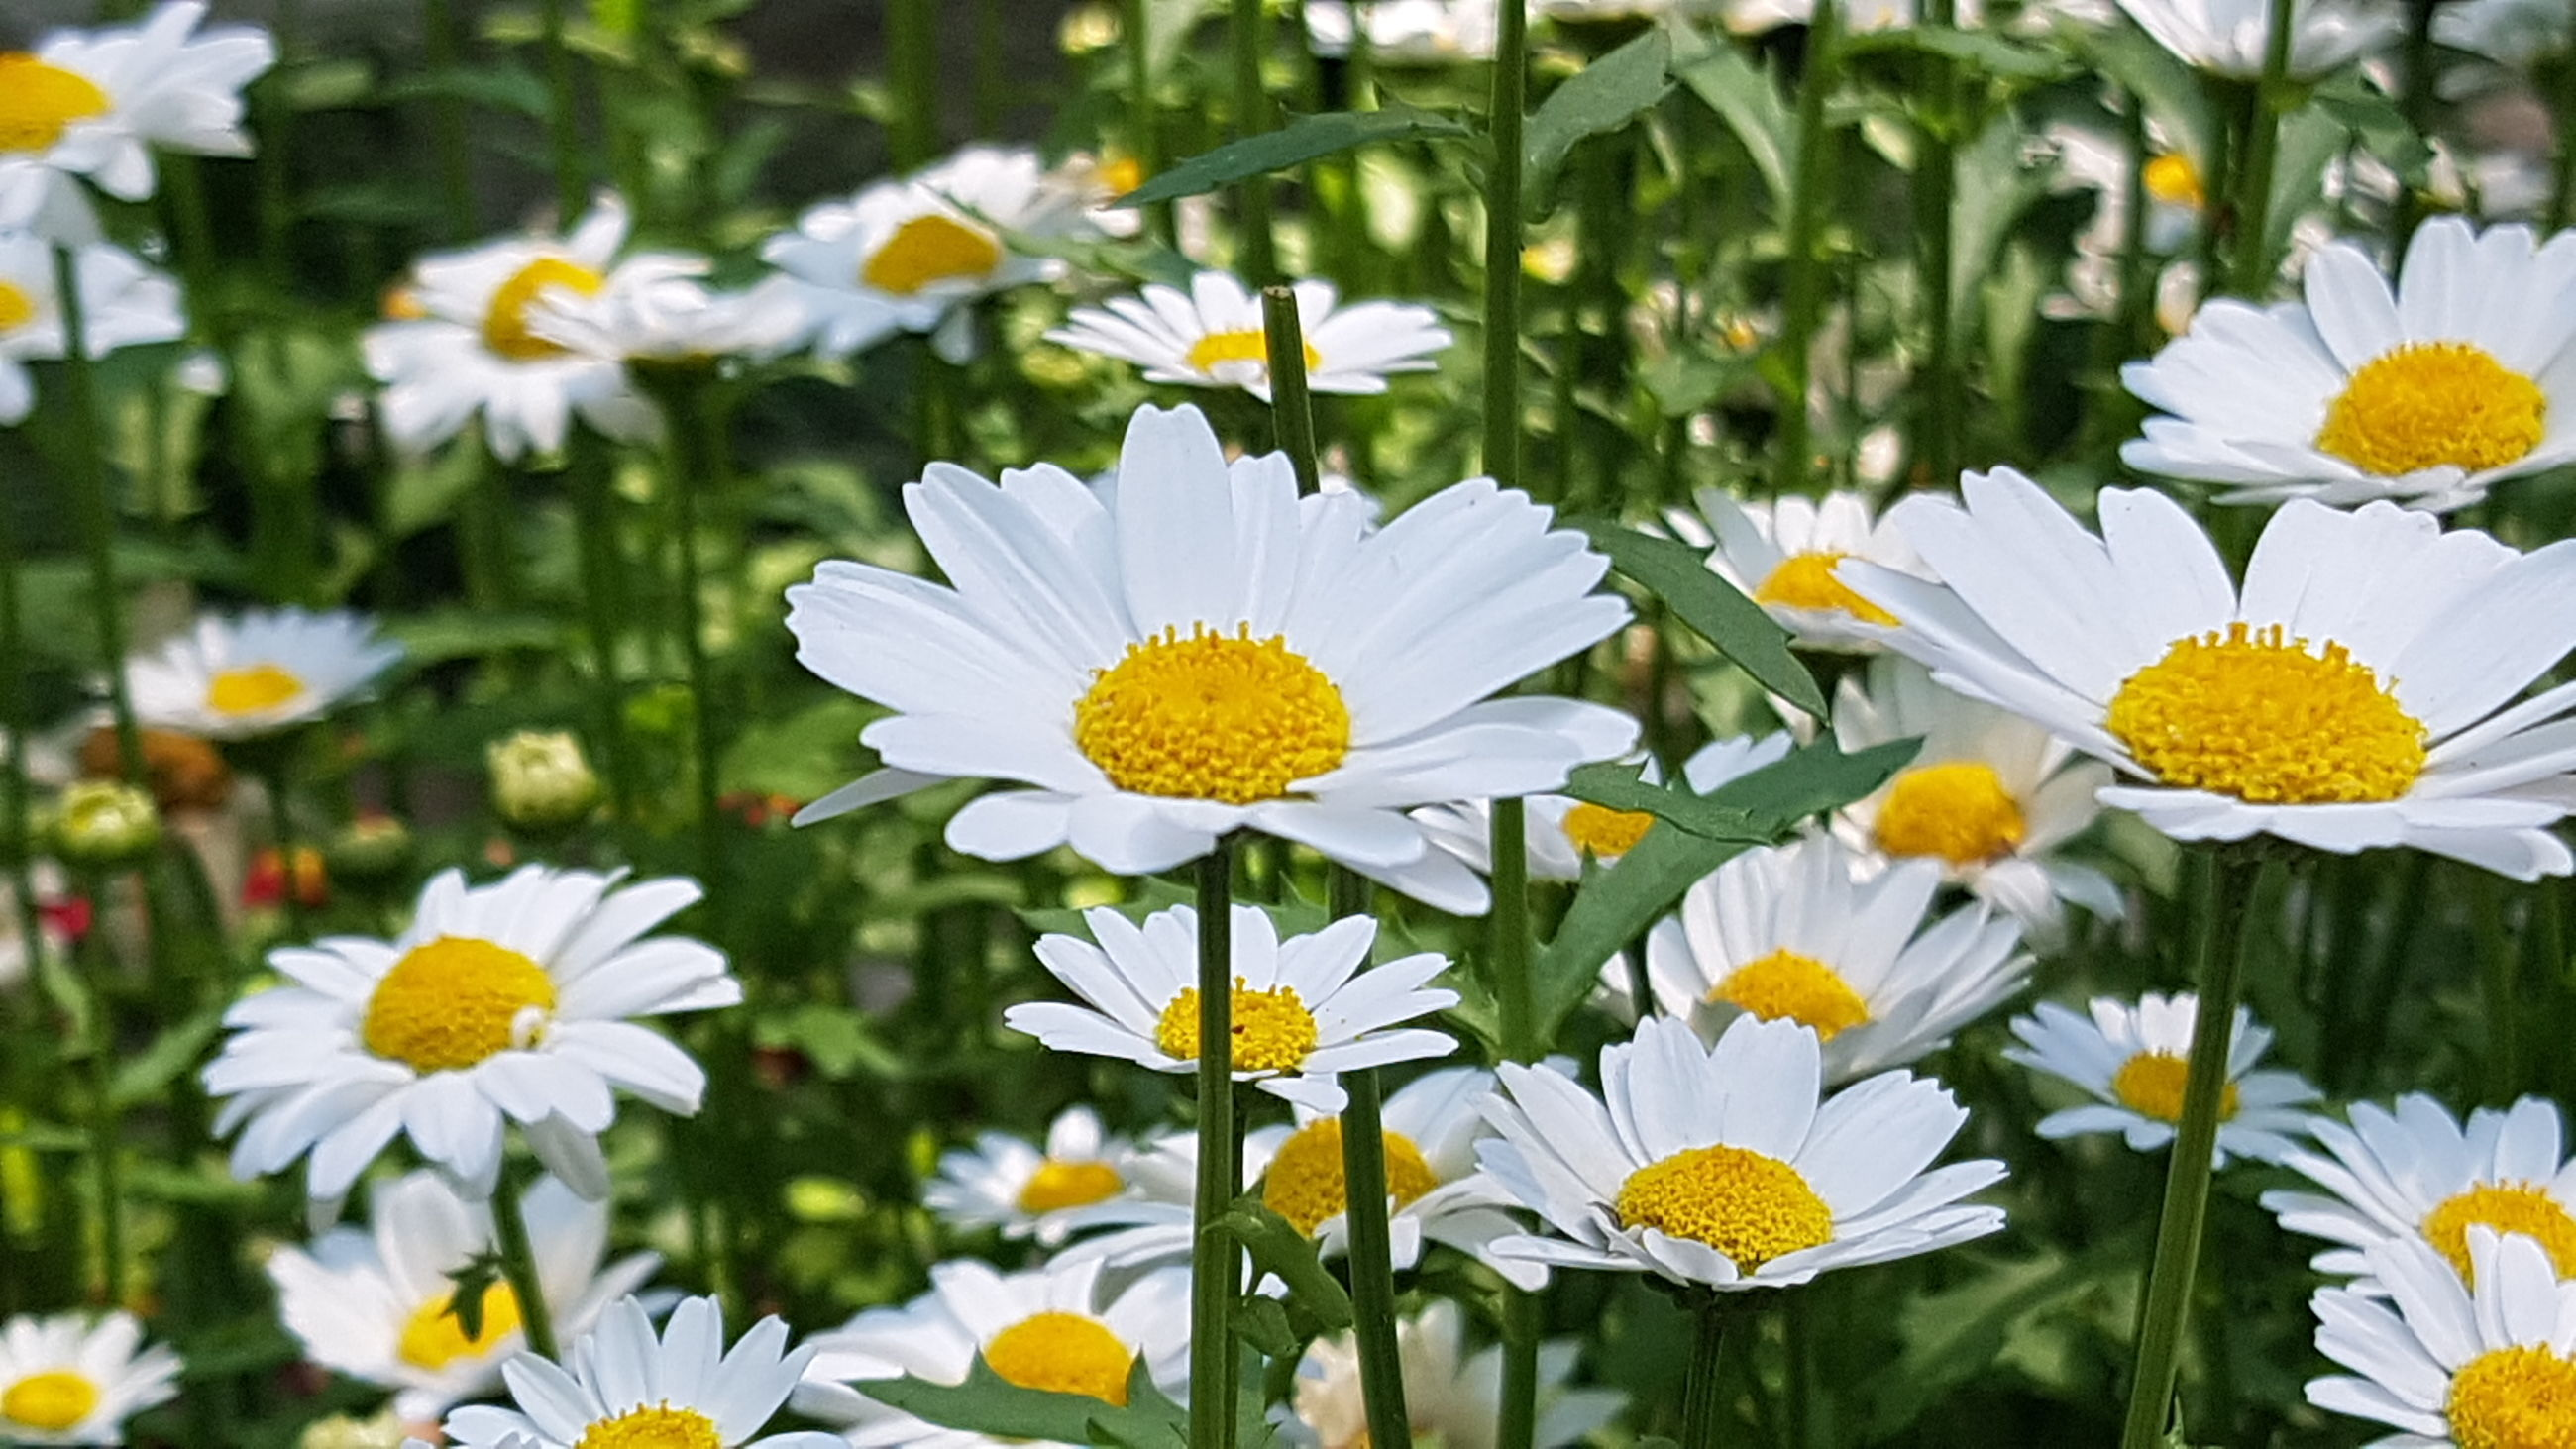 flowering plant, flower, freshness, plant, fragility, vulnerability, beauty in nature, petal, growth, inflorescence, flower head, close-up, white color, daisy, yellow, day, pollen, nature, no people, outdoors, flowerbed